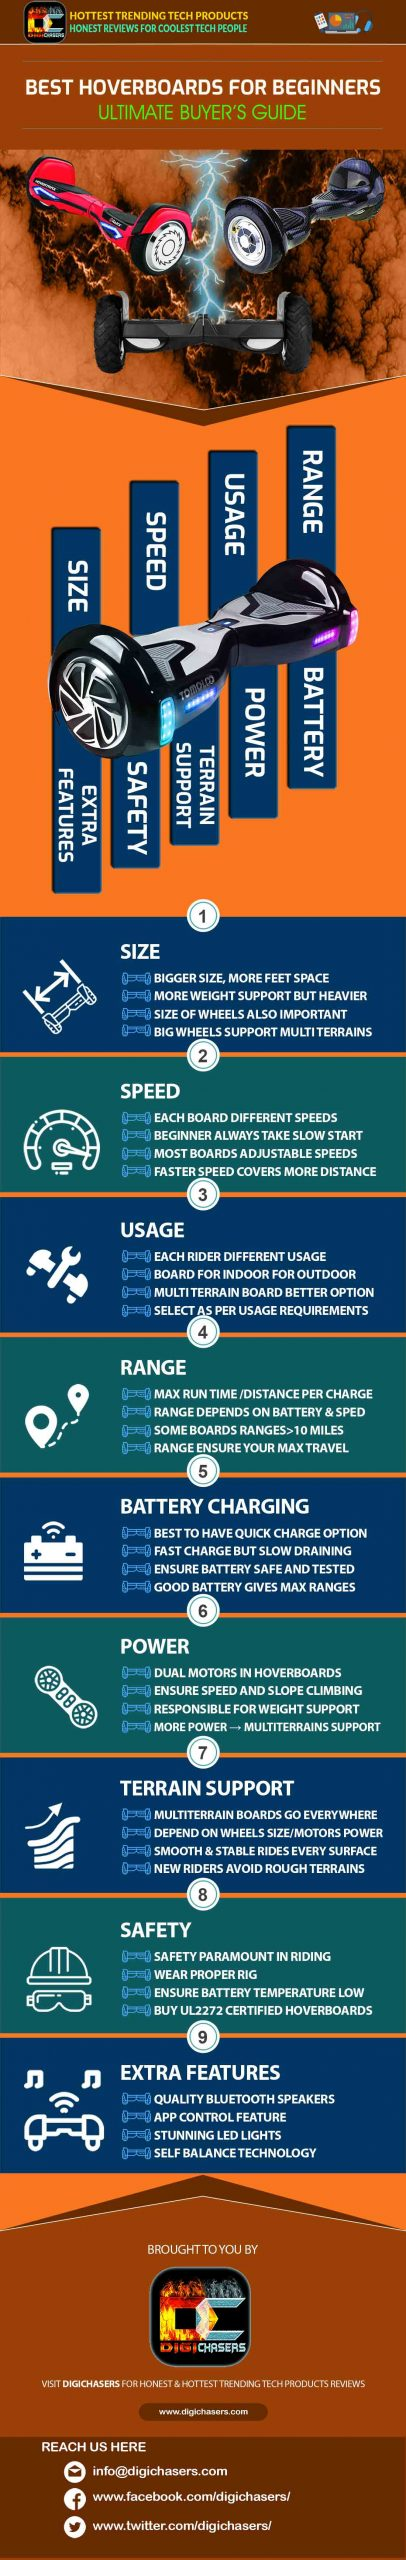 best-hoverboards-for-beginners-infographics